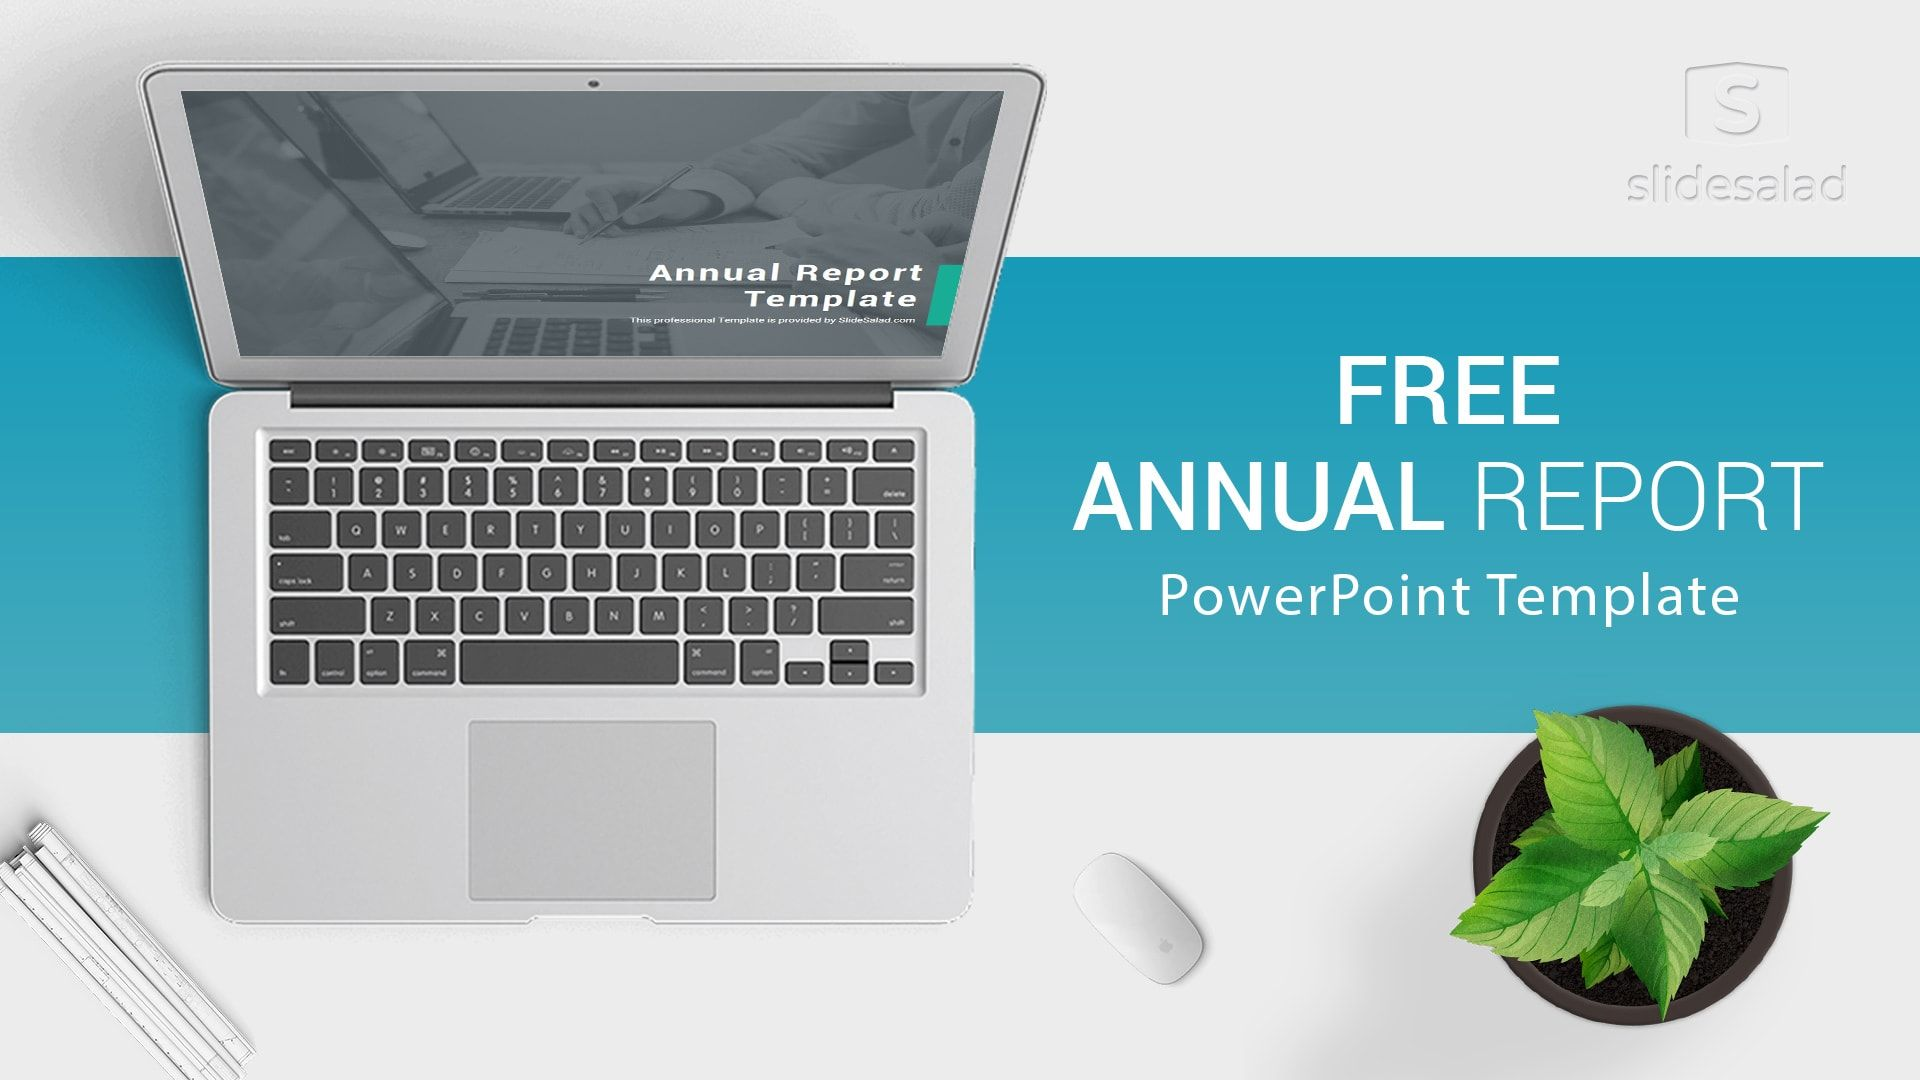 Free Download Annual Report PowerPoint Template for Presentations #annualreports